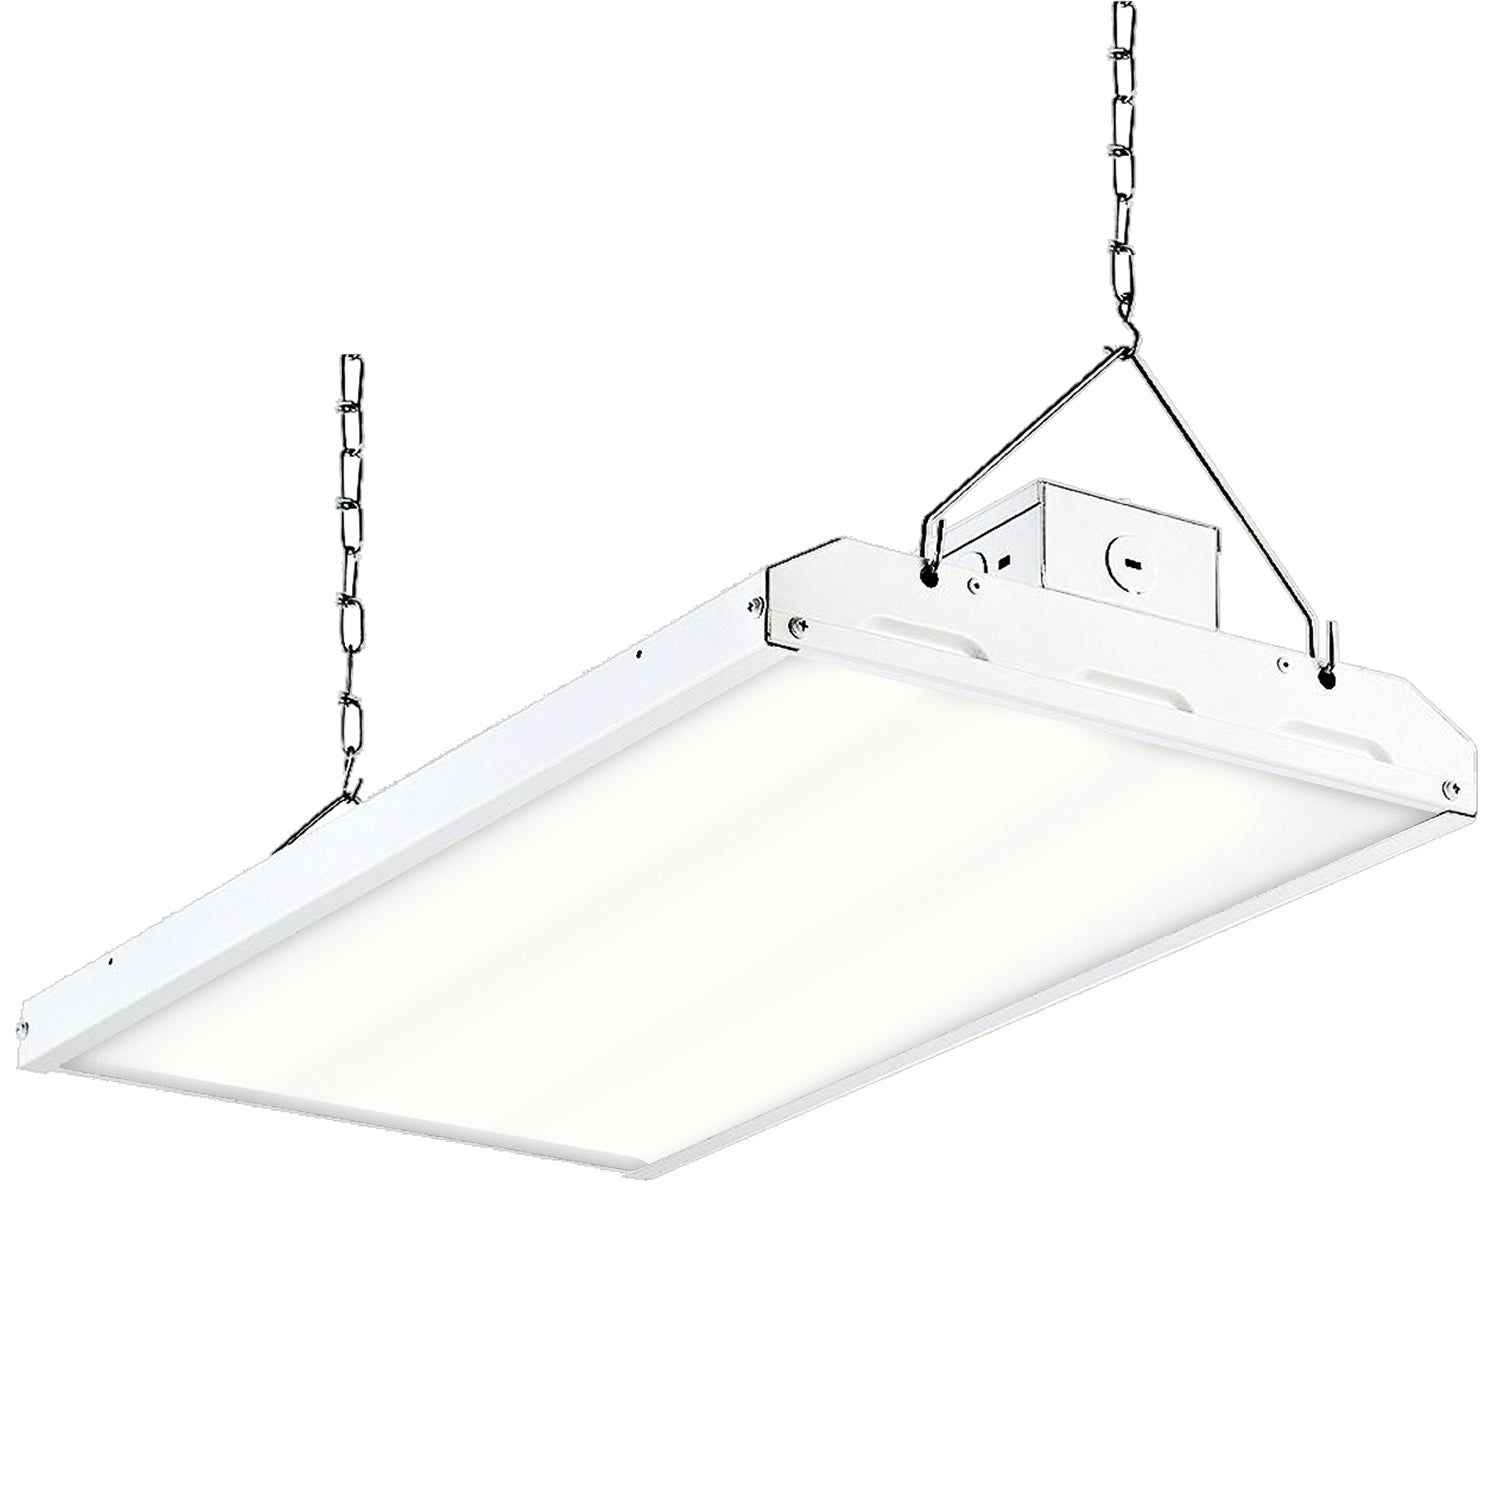 Hykolity 8FT Linear LED Light Fixture 64W 8400lm Commercial Grade High Output